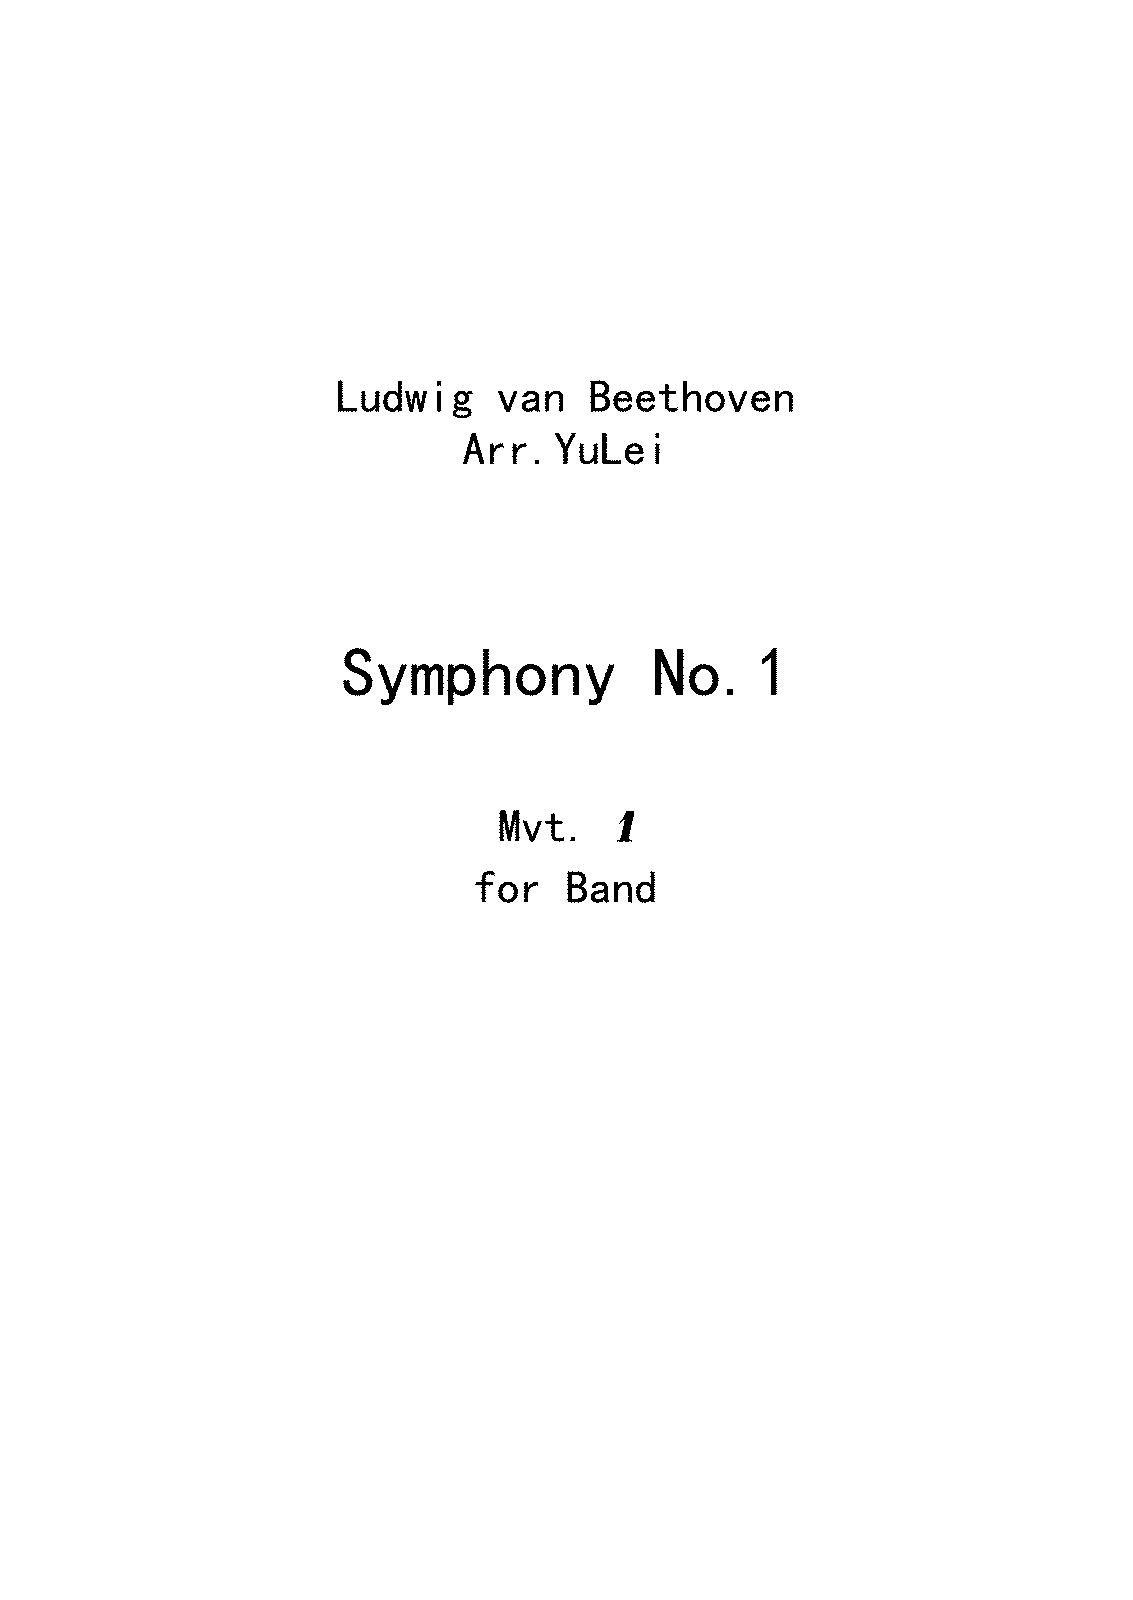 PMLP01582-Symphony No 1 in C Major for band,Op 21 - 乐谱和分谱.pdf